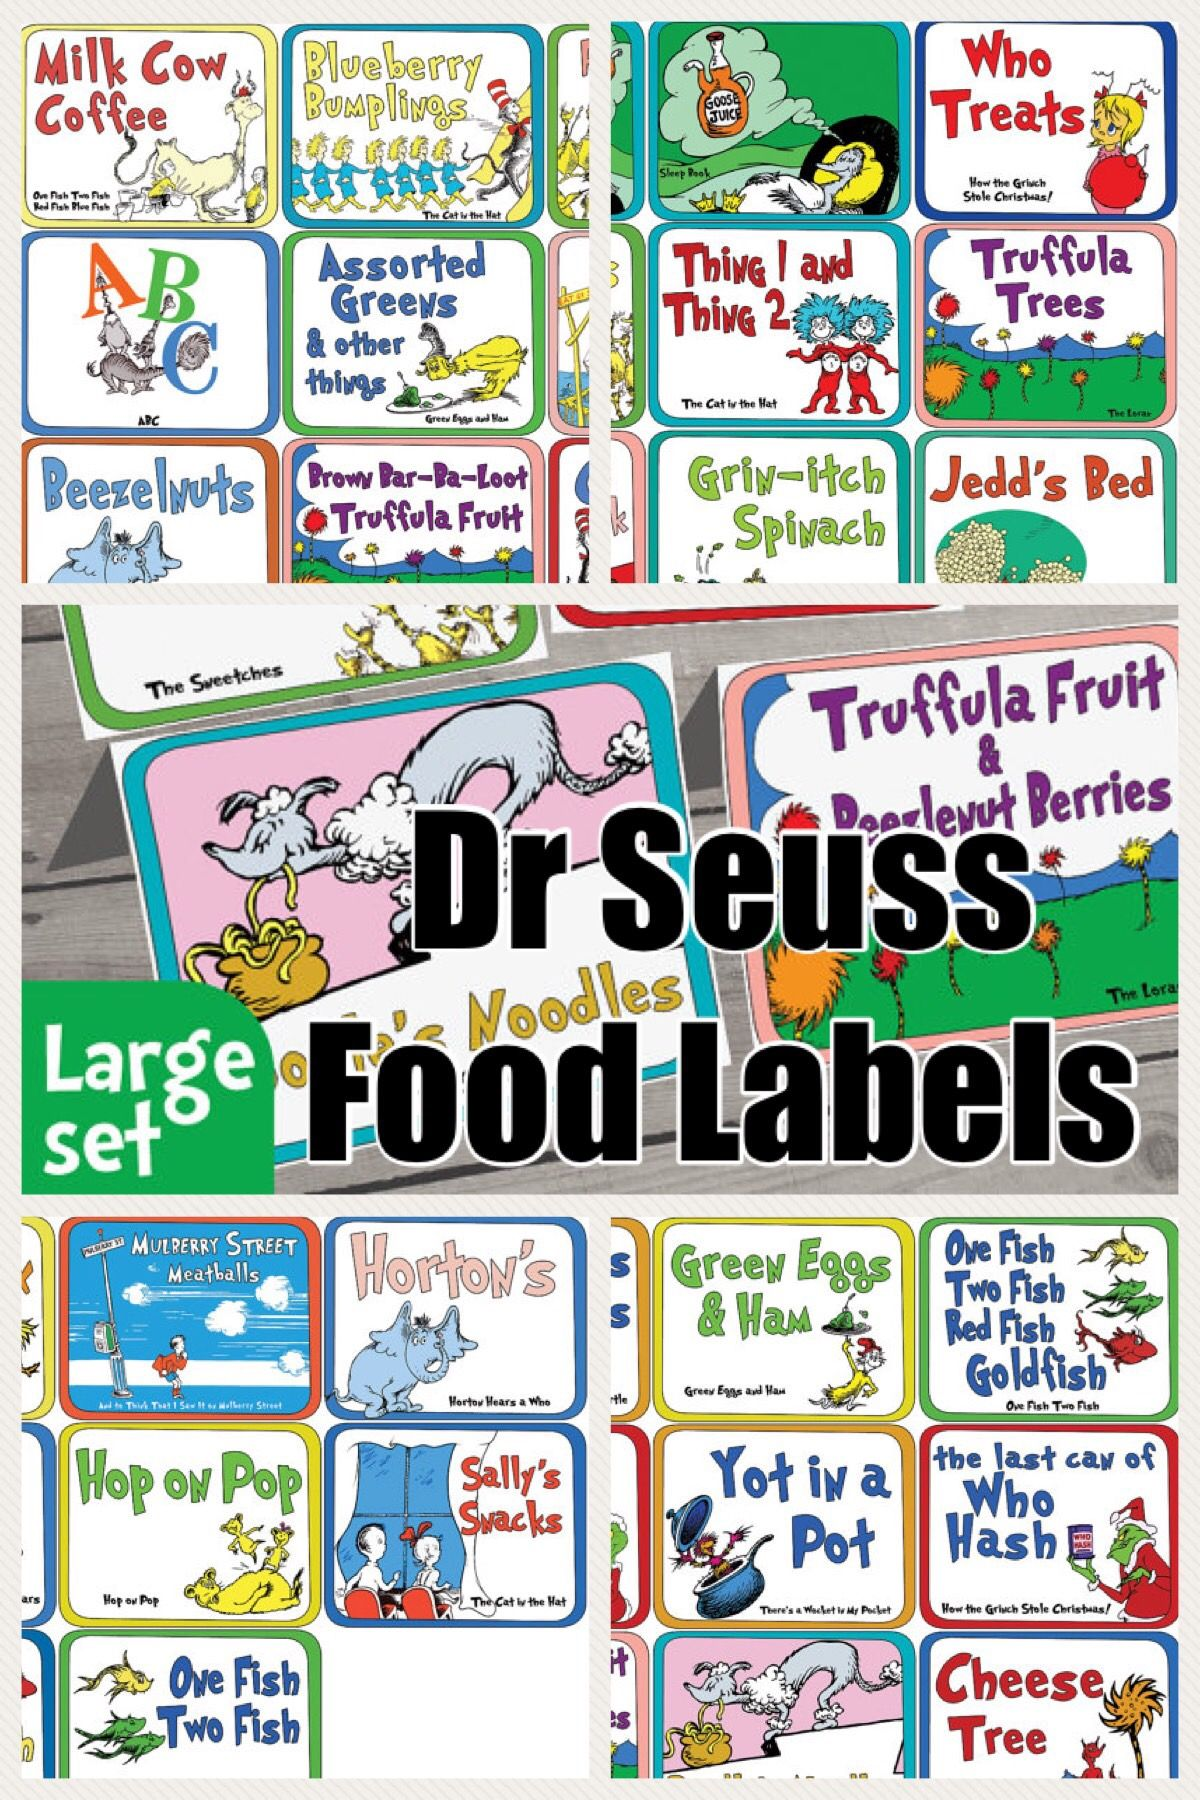 Many Of The Most Popular Dr Seuss Books Have Menu Inspiring Food